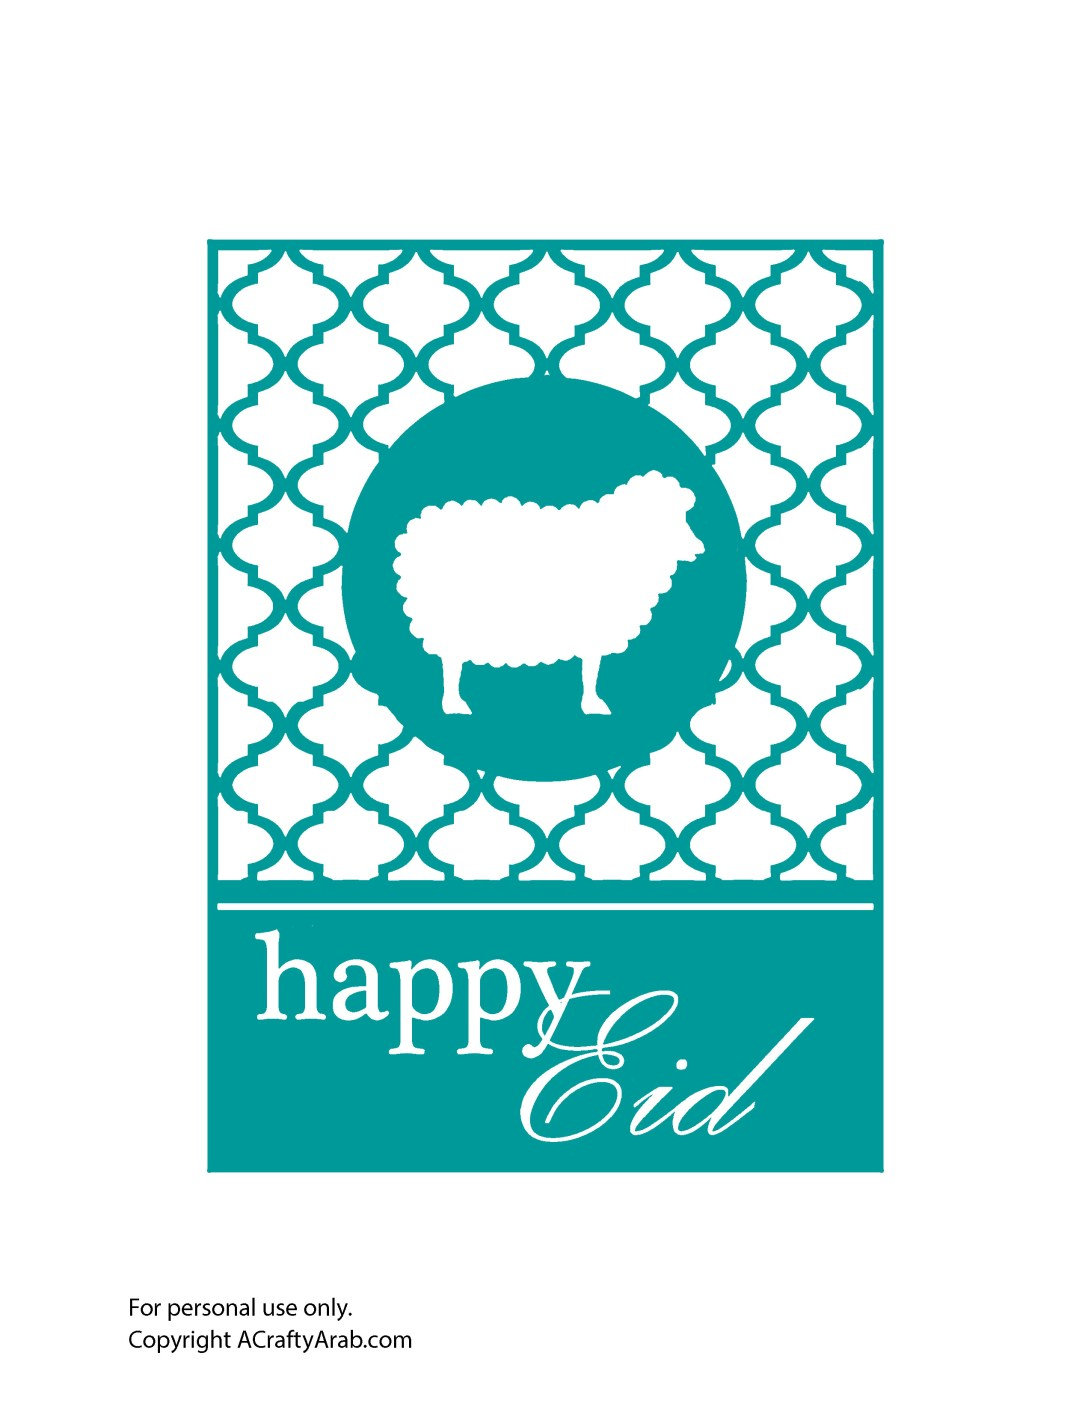 Happy Eid Welcome sign - teal copy